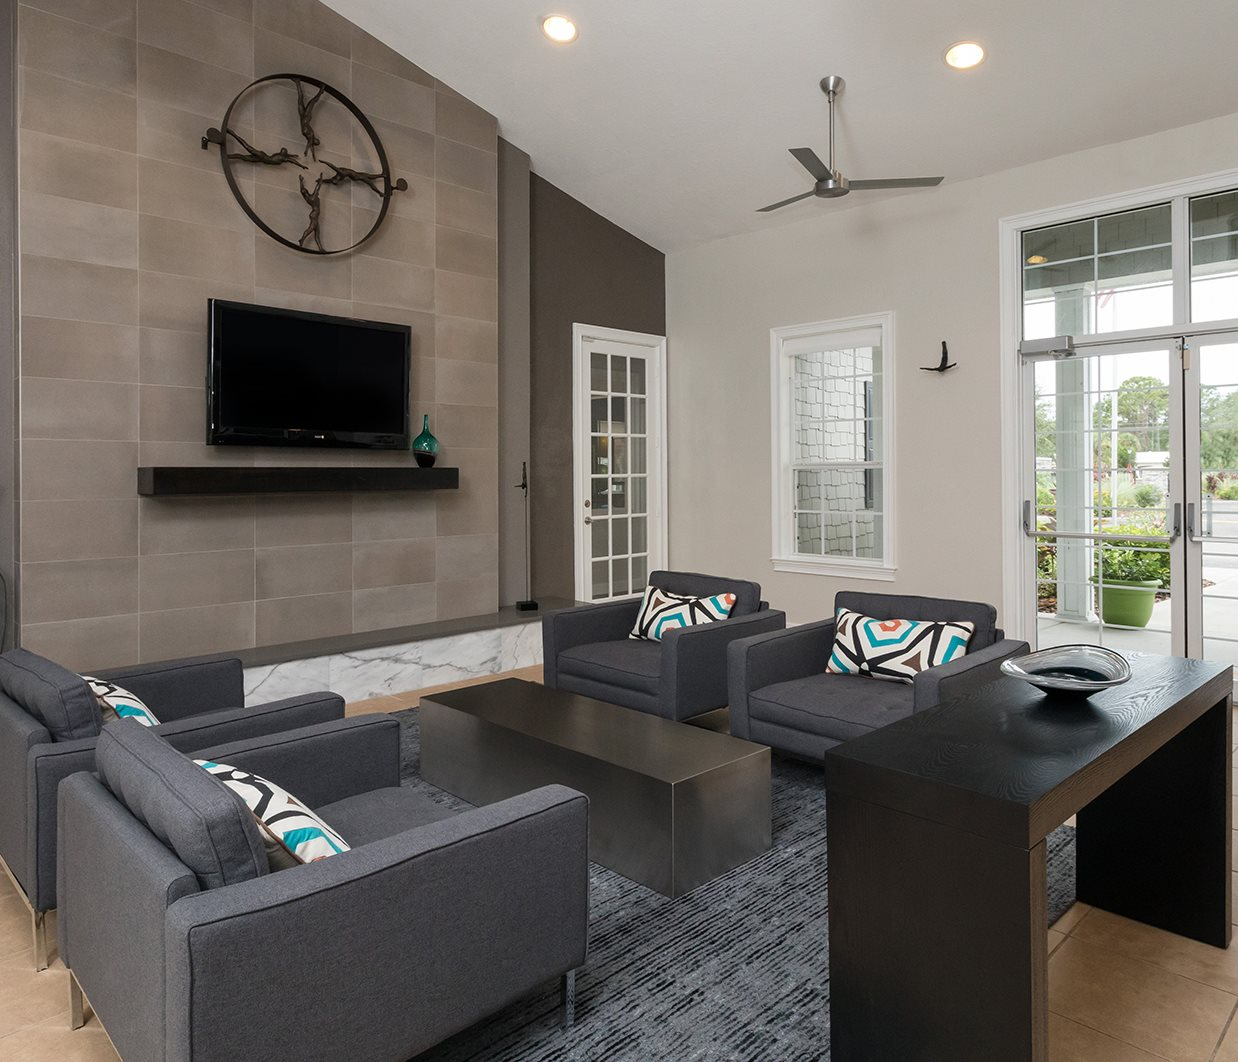 Houses Or Apartments: Apartments In Port Charlotte, FL